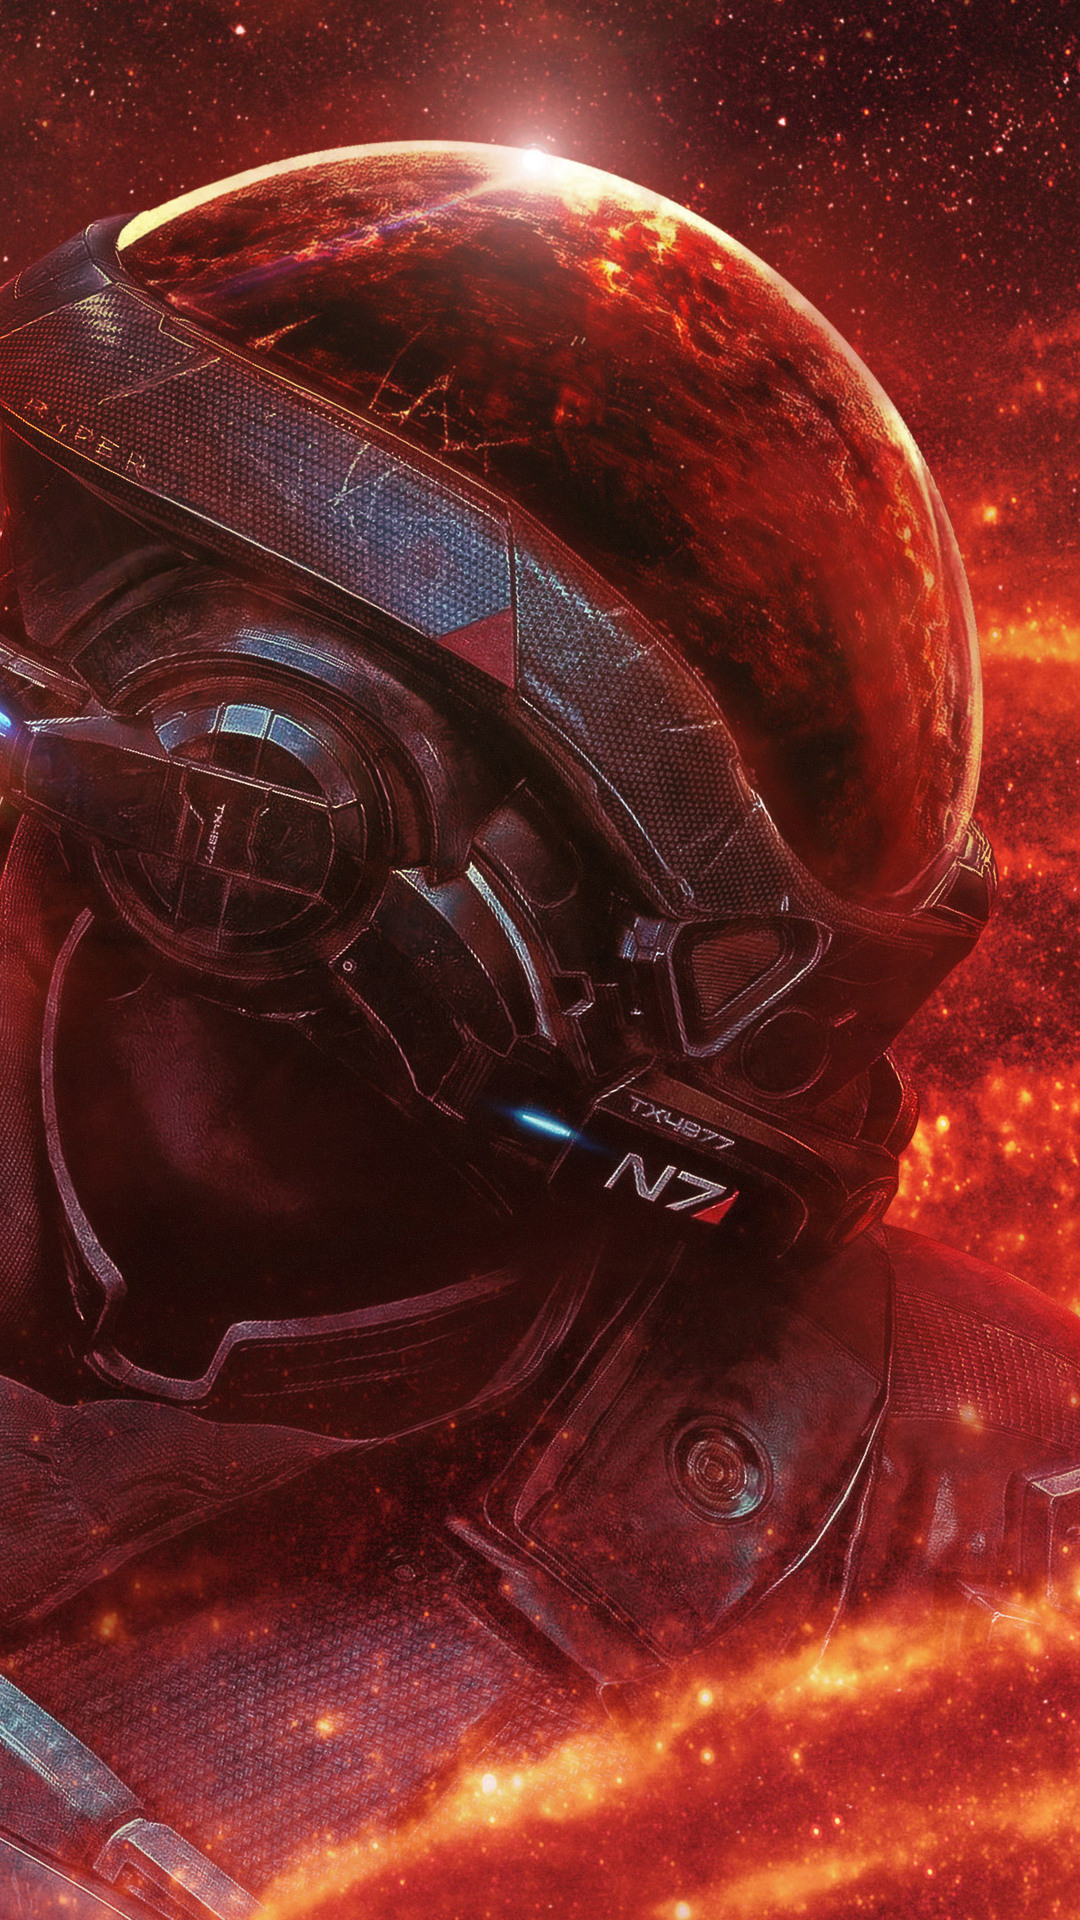 1080x1920 Mass Effect Andromeda RYDER N7 4k Iphone 7,6s,6 ...